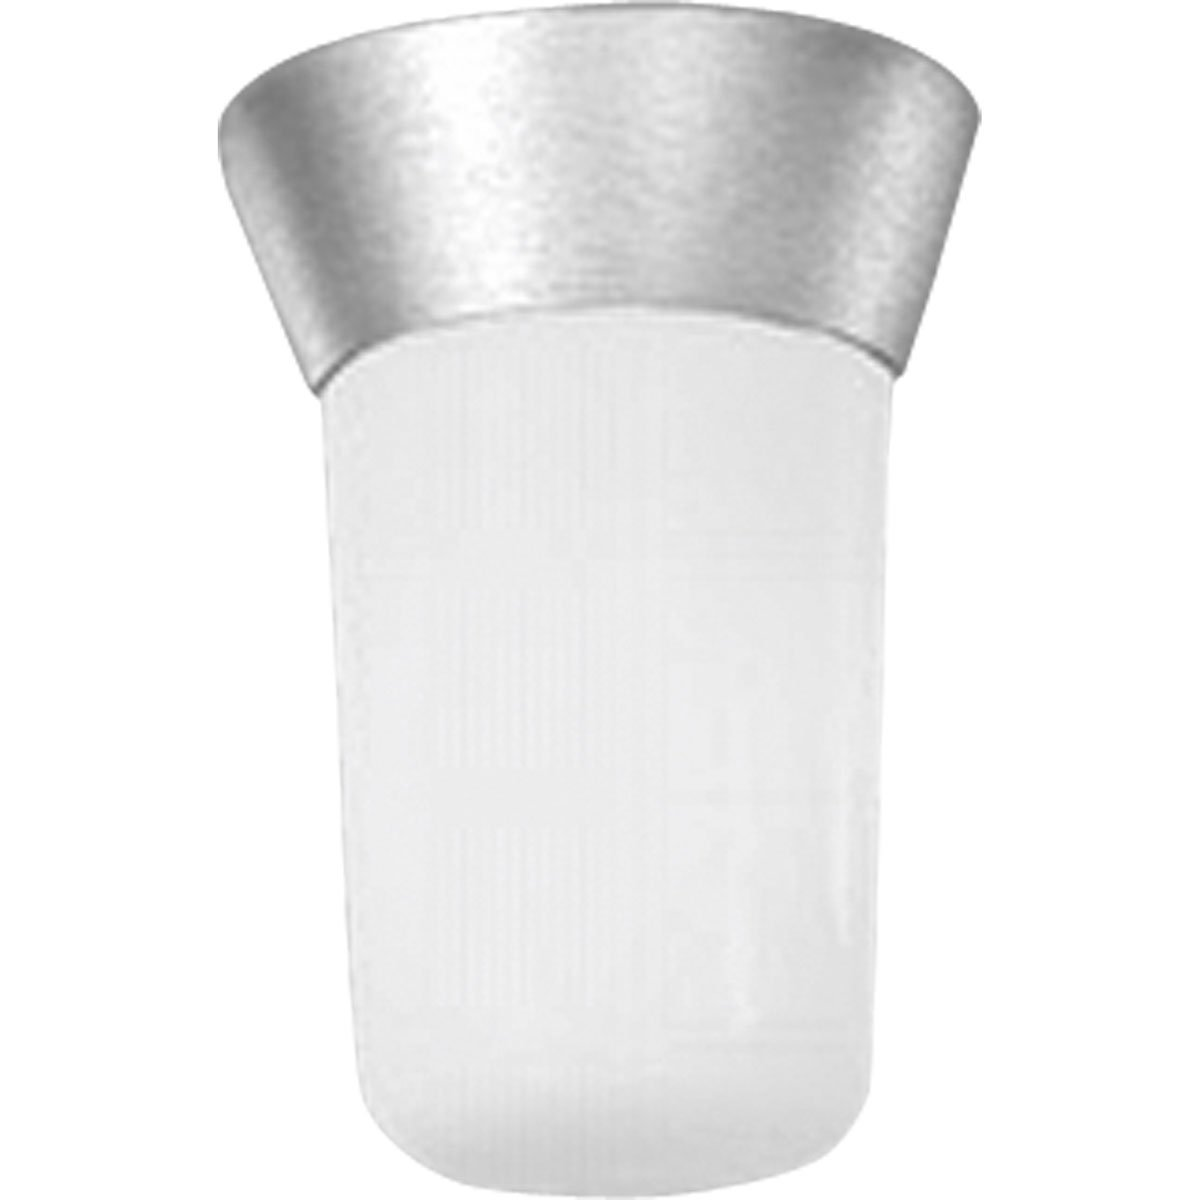 Progress Lighting P5510-16 Ceiling Fixture with Threaded Opal Glass Shades That Screw Onto Fitter with Vapor-Proof Gaskets and Porcelain Sockets, Satin Aluminum